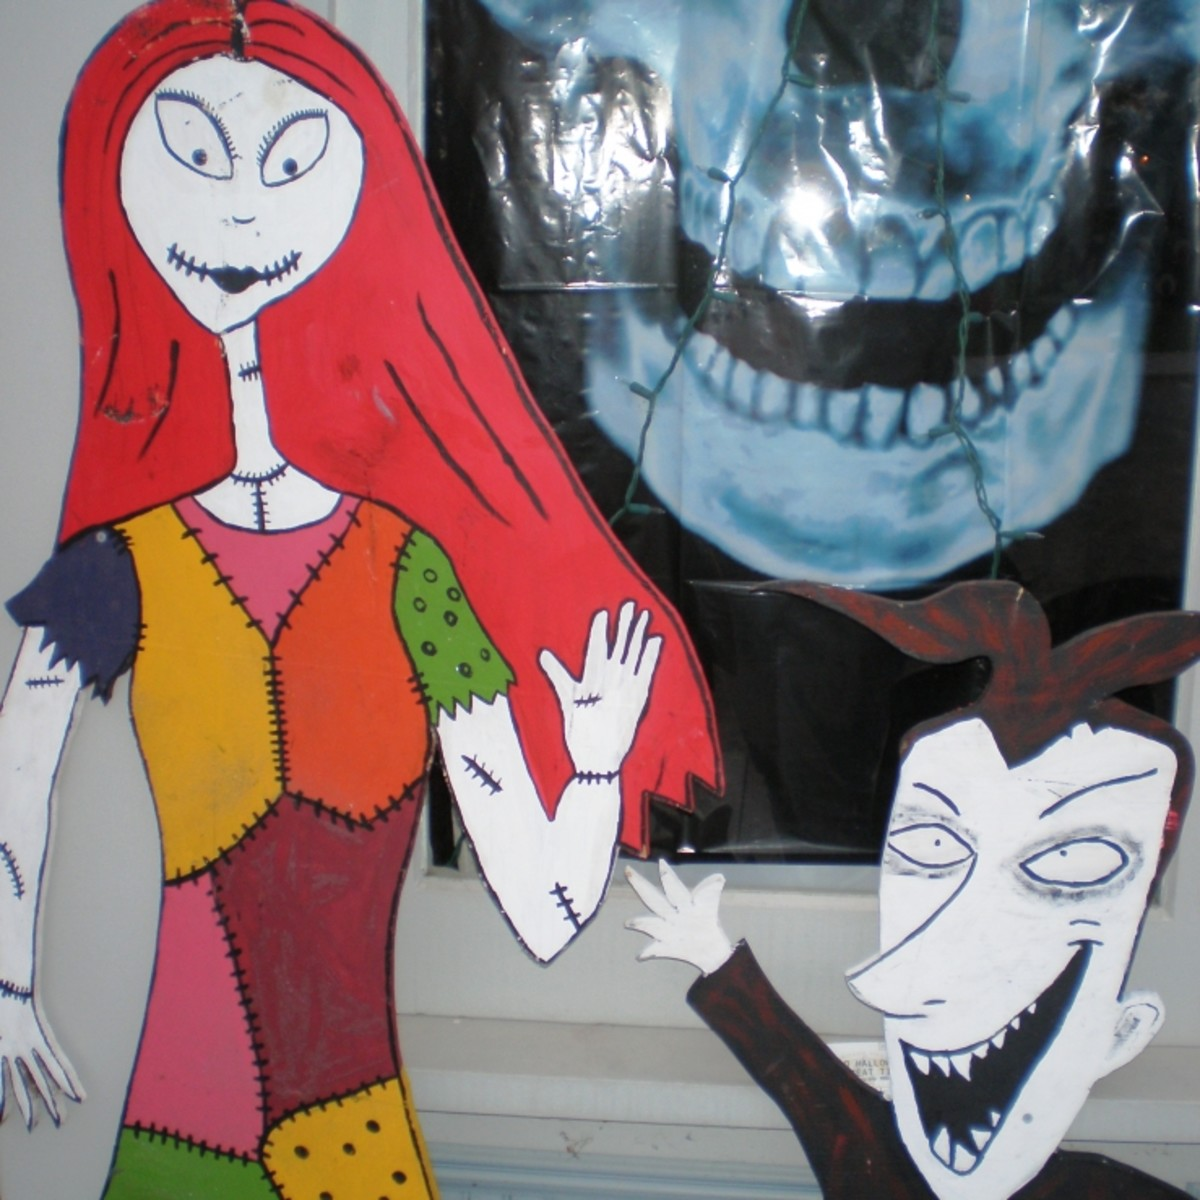 Halloween decor like Sally and Lock from The Nightmare Before Christmas wave to guests.